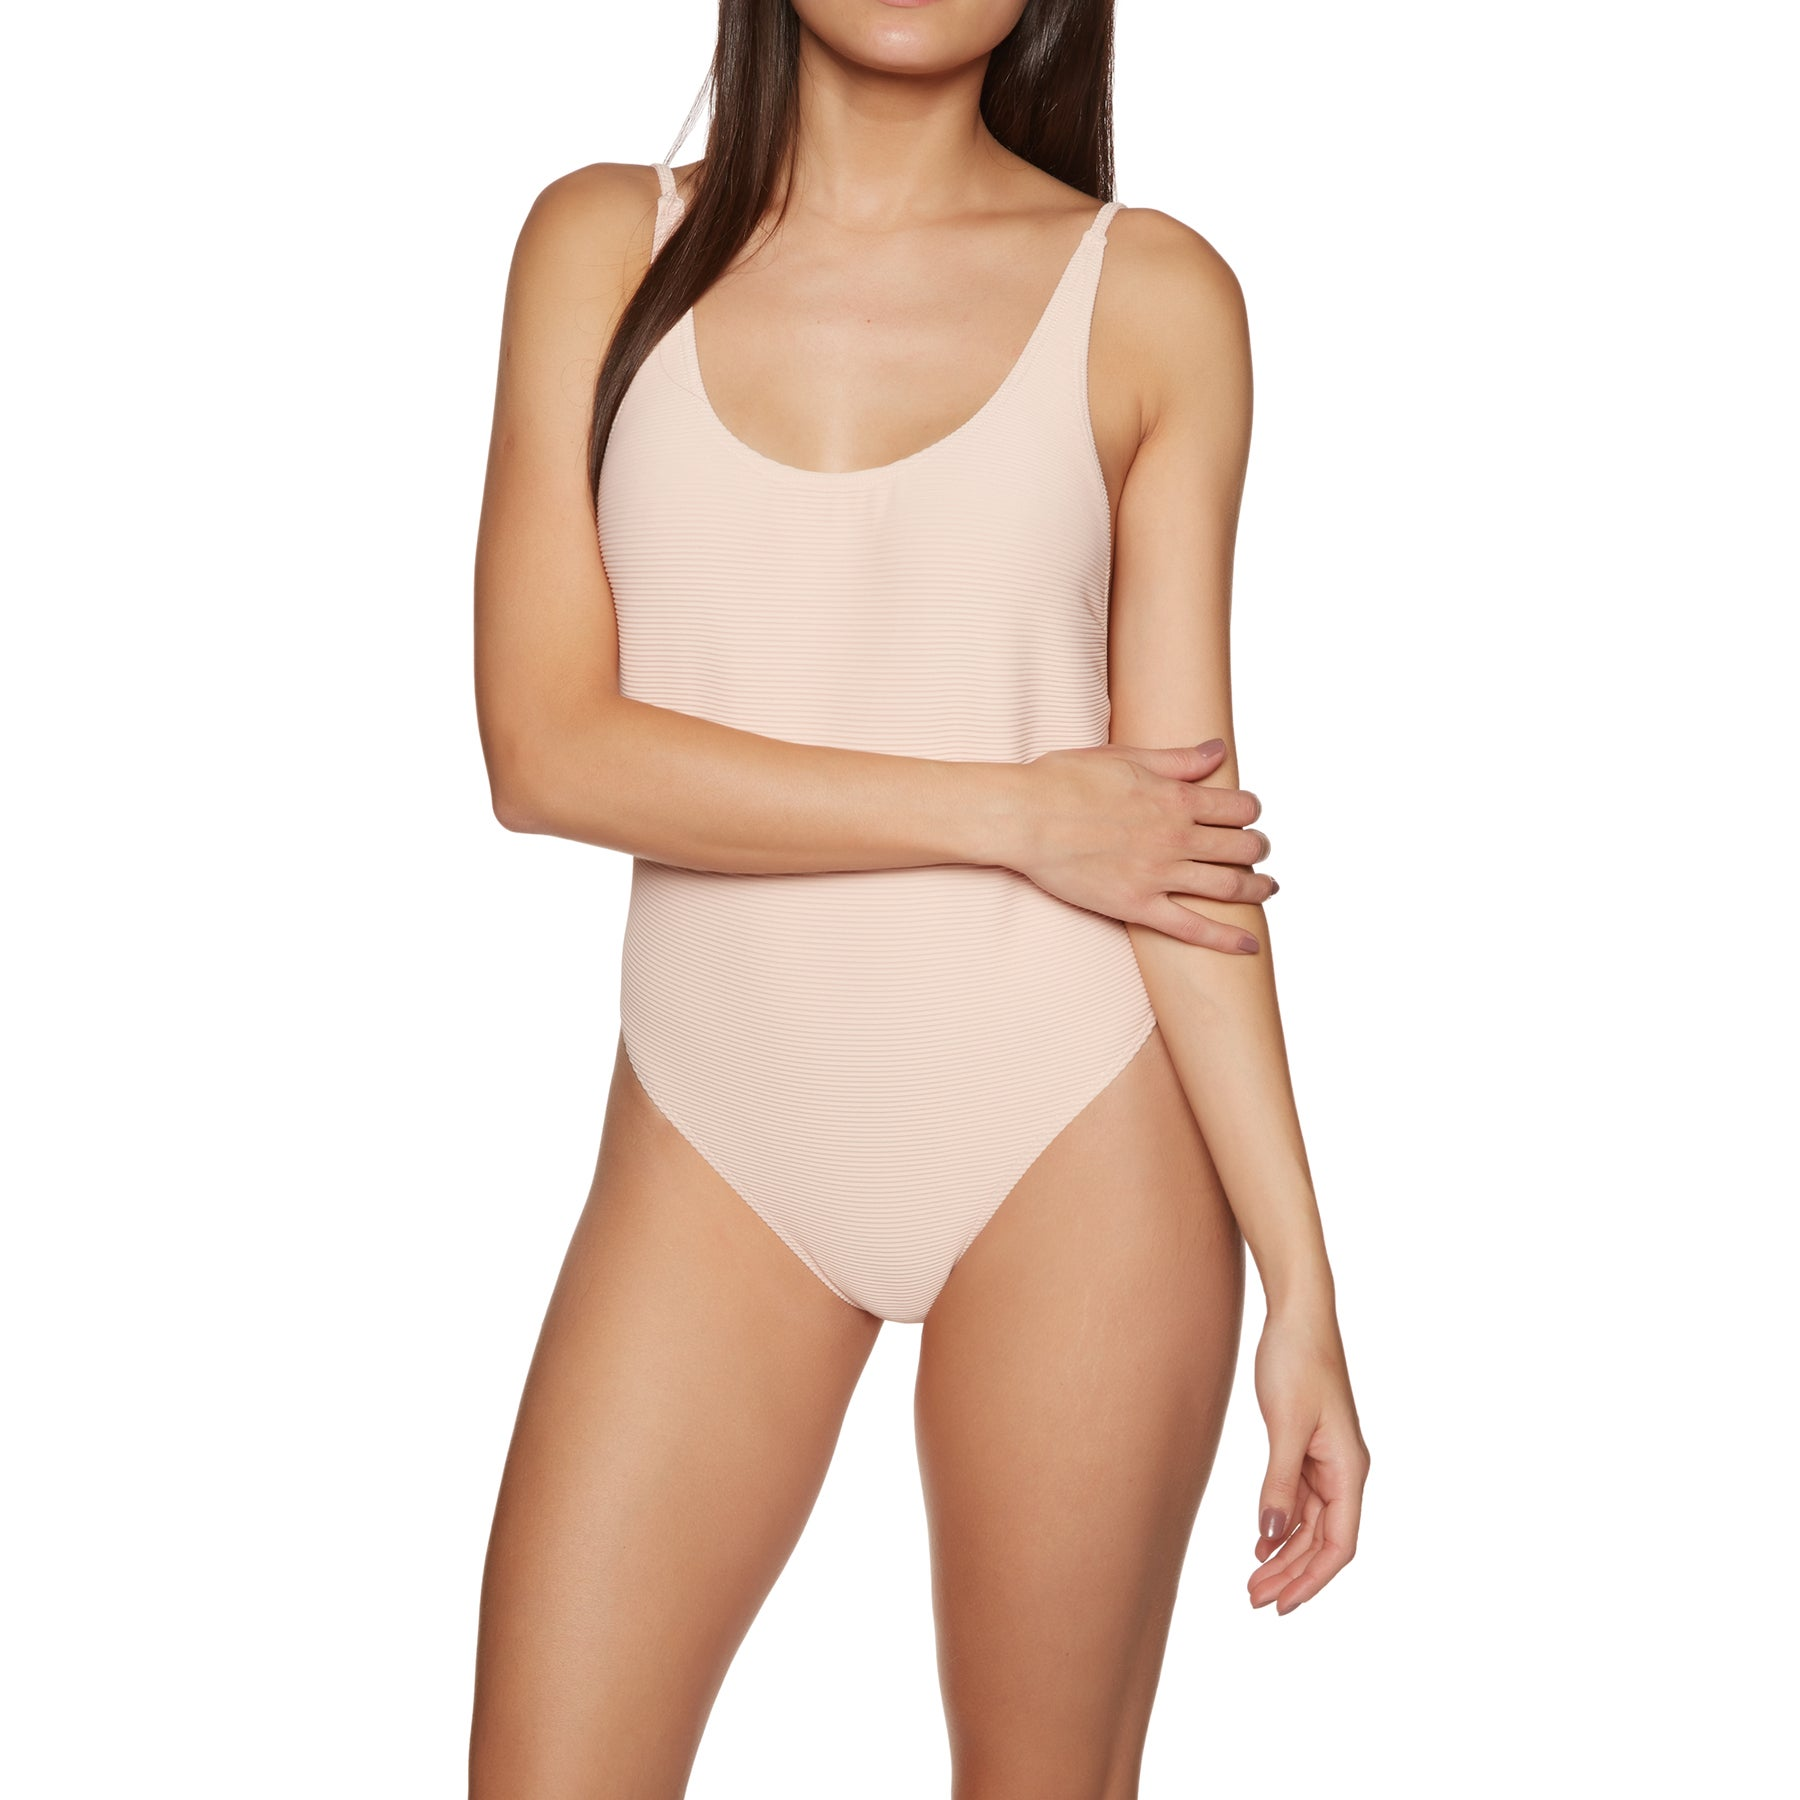 Billabong Tanlines One Piece Ladies Swimsuit